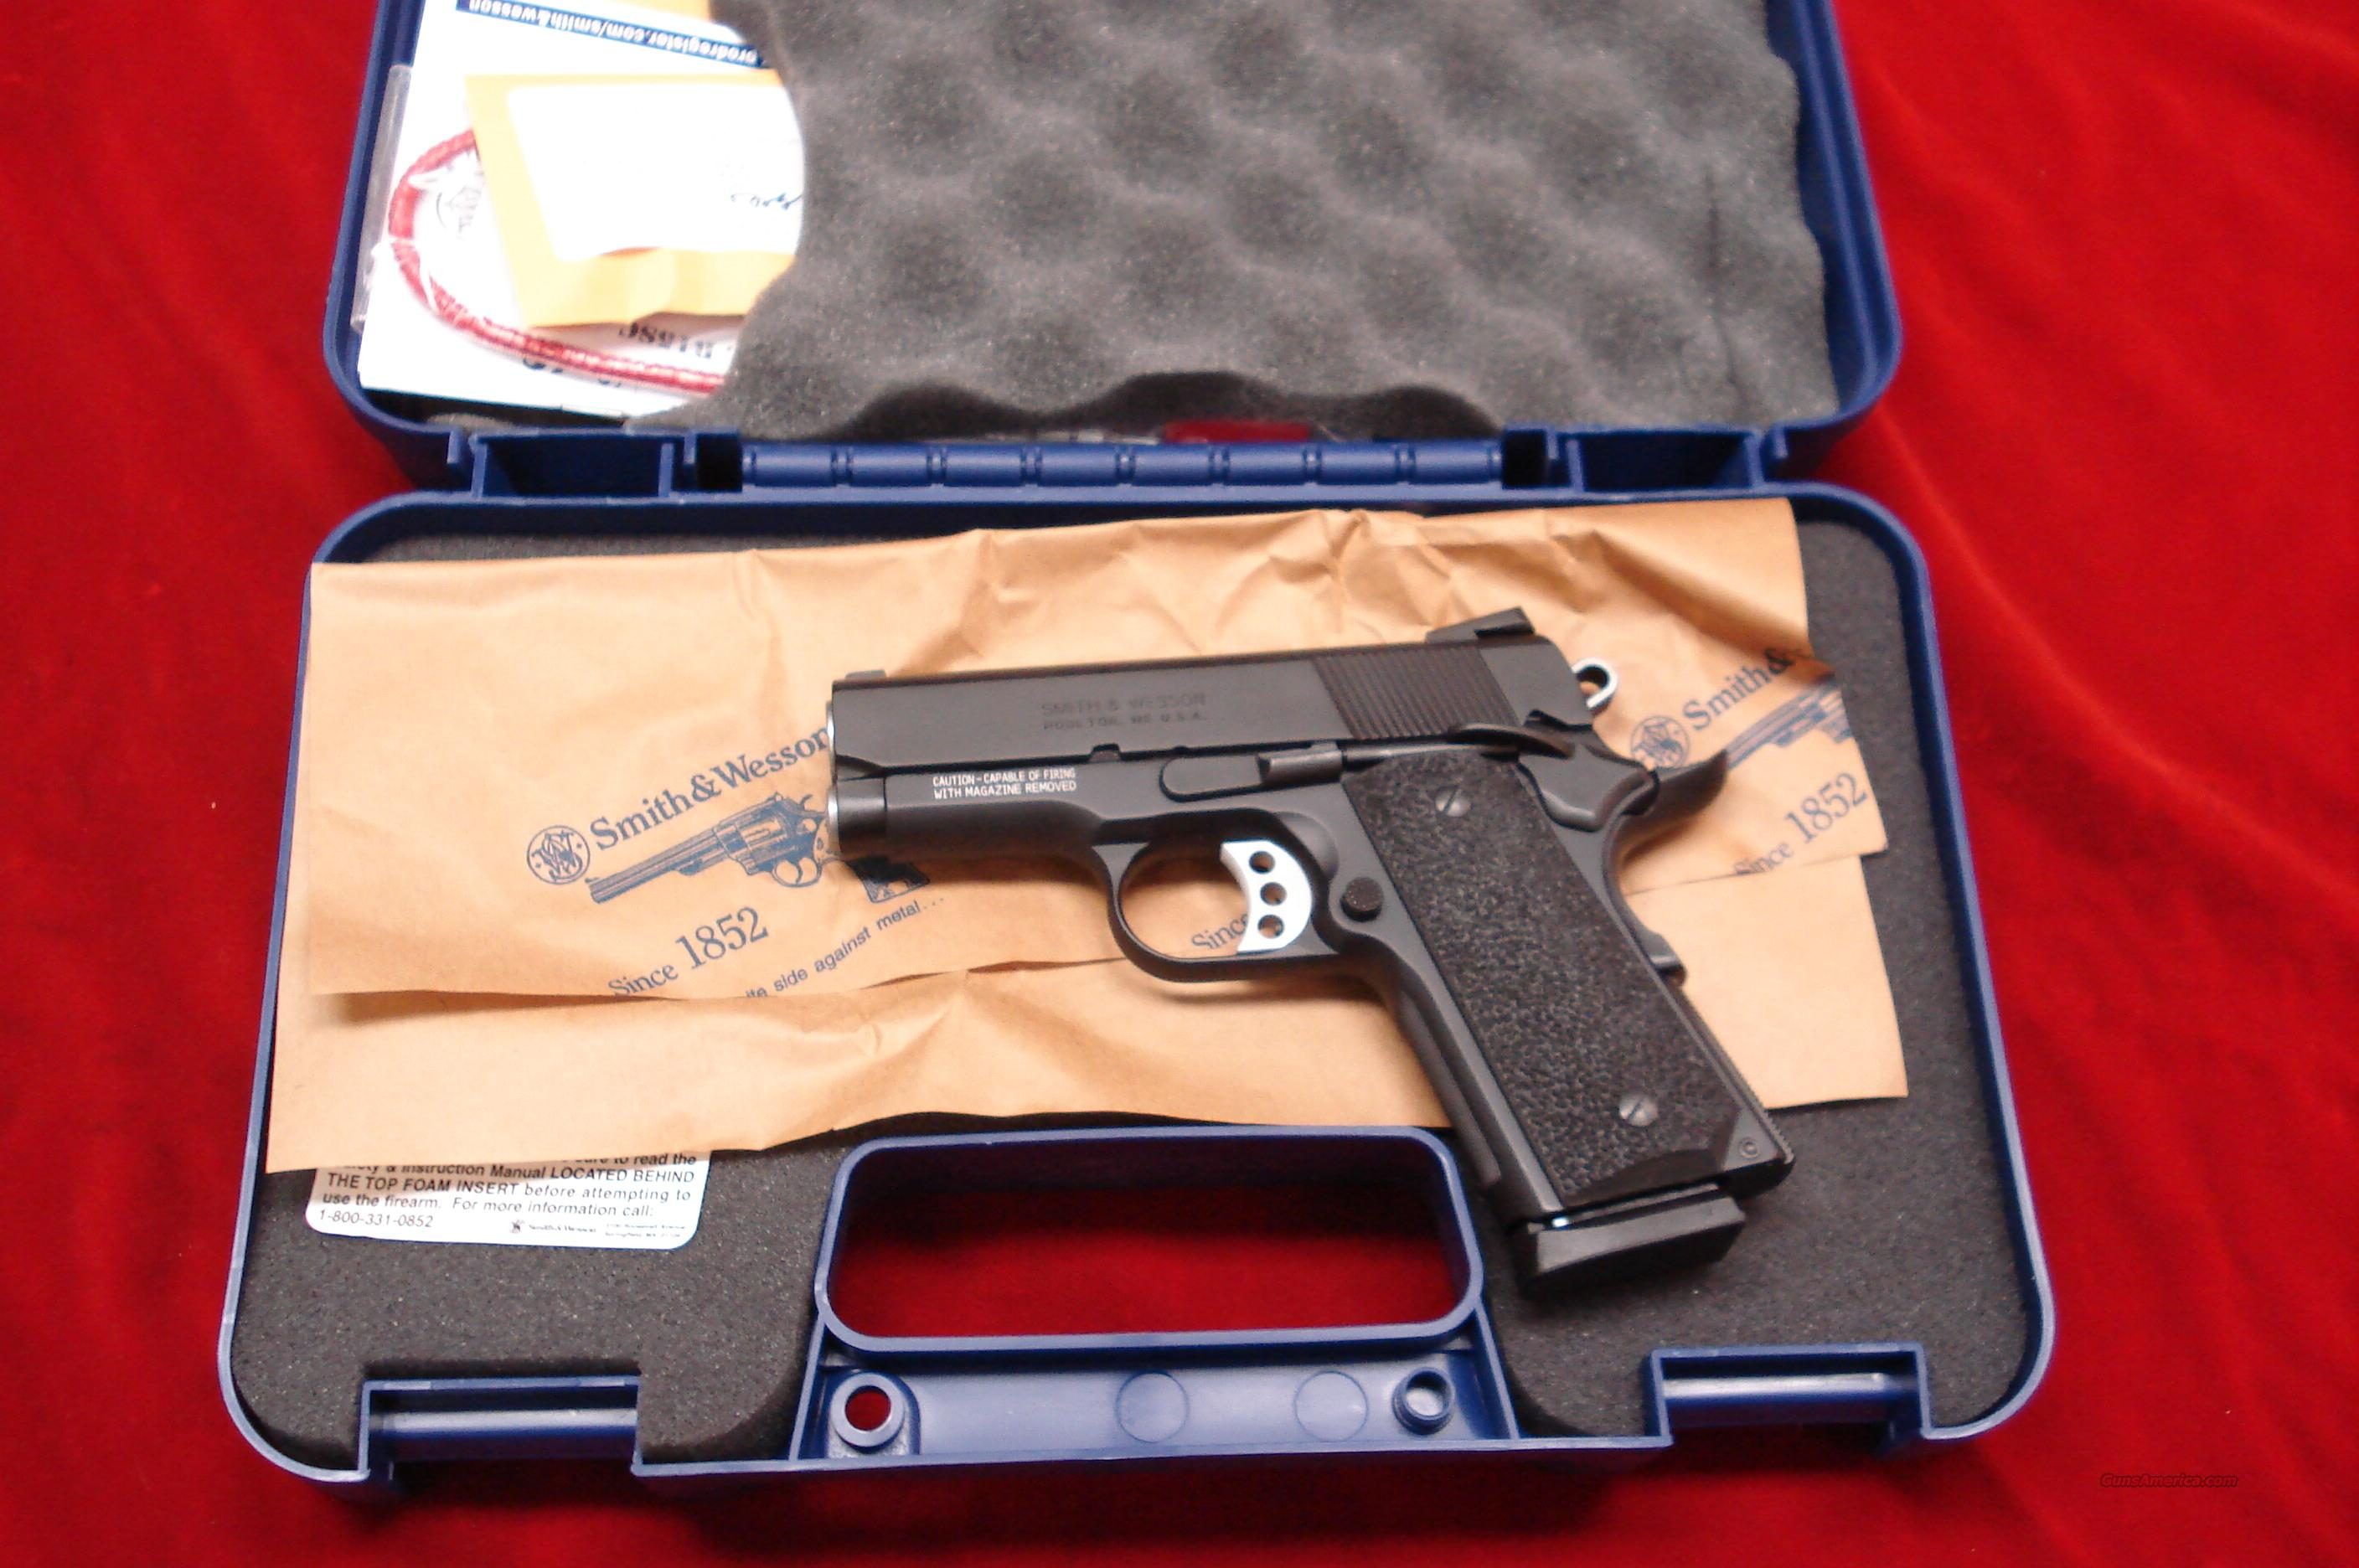 "SMITH AND WESSON SUB COMPACT SCANDIUM SW1911 PRO SERIES 3"" 45ACP NEW   (178020)  Guns > Pistols > Smith & Wesson Pistols - Autos > Alloy Frame"